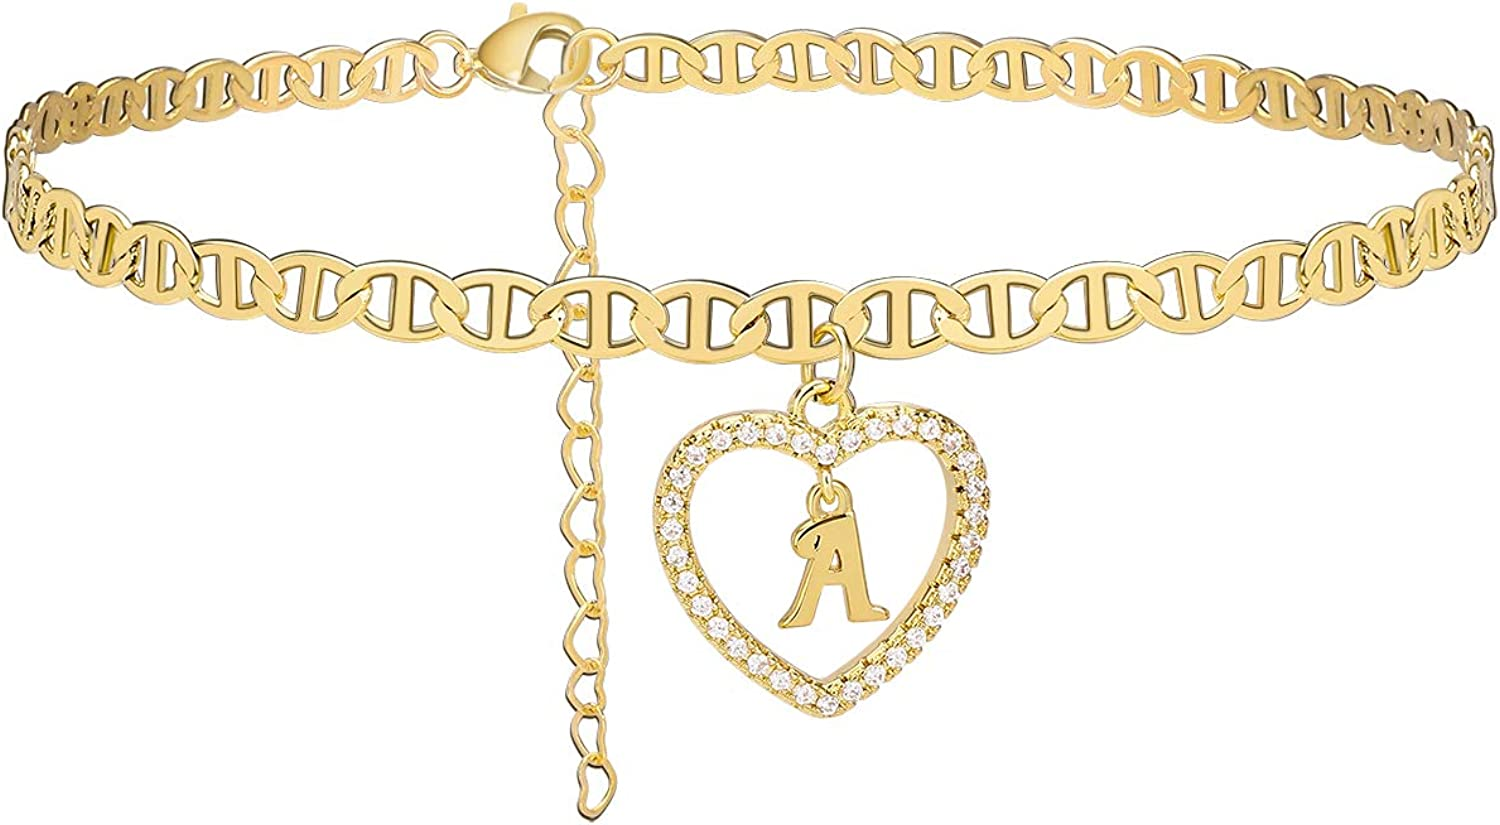 Estendly Initial Anklet 14K Gold Plated Cubic Zirconia Heart Mariner Chain Ankle Bracelets 26 Letters Alphabet Foot Jewelry Gift for Women